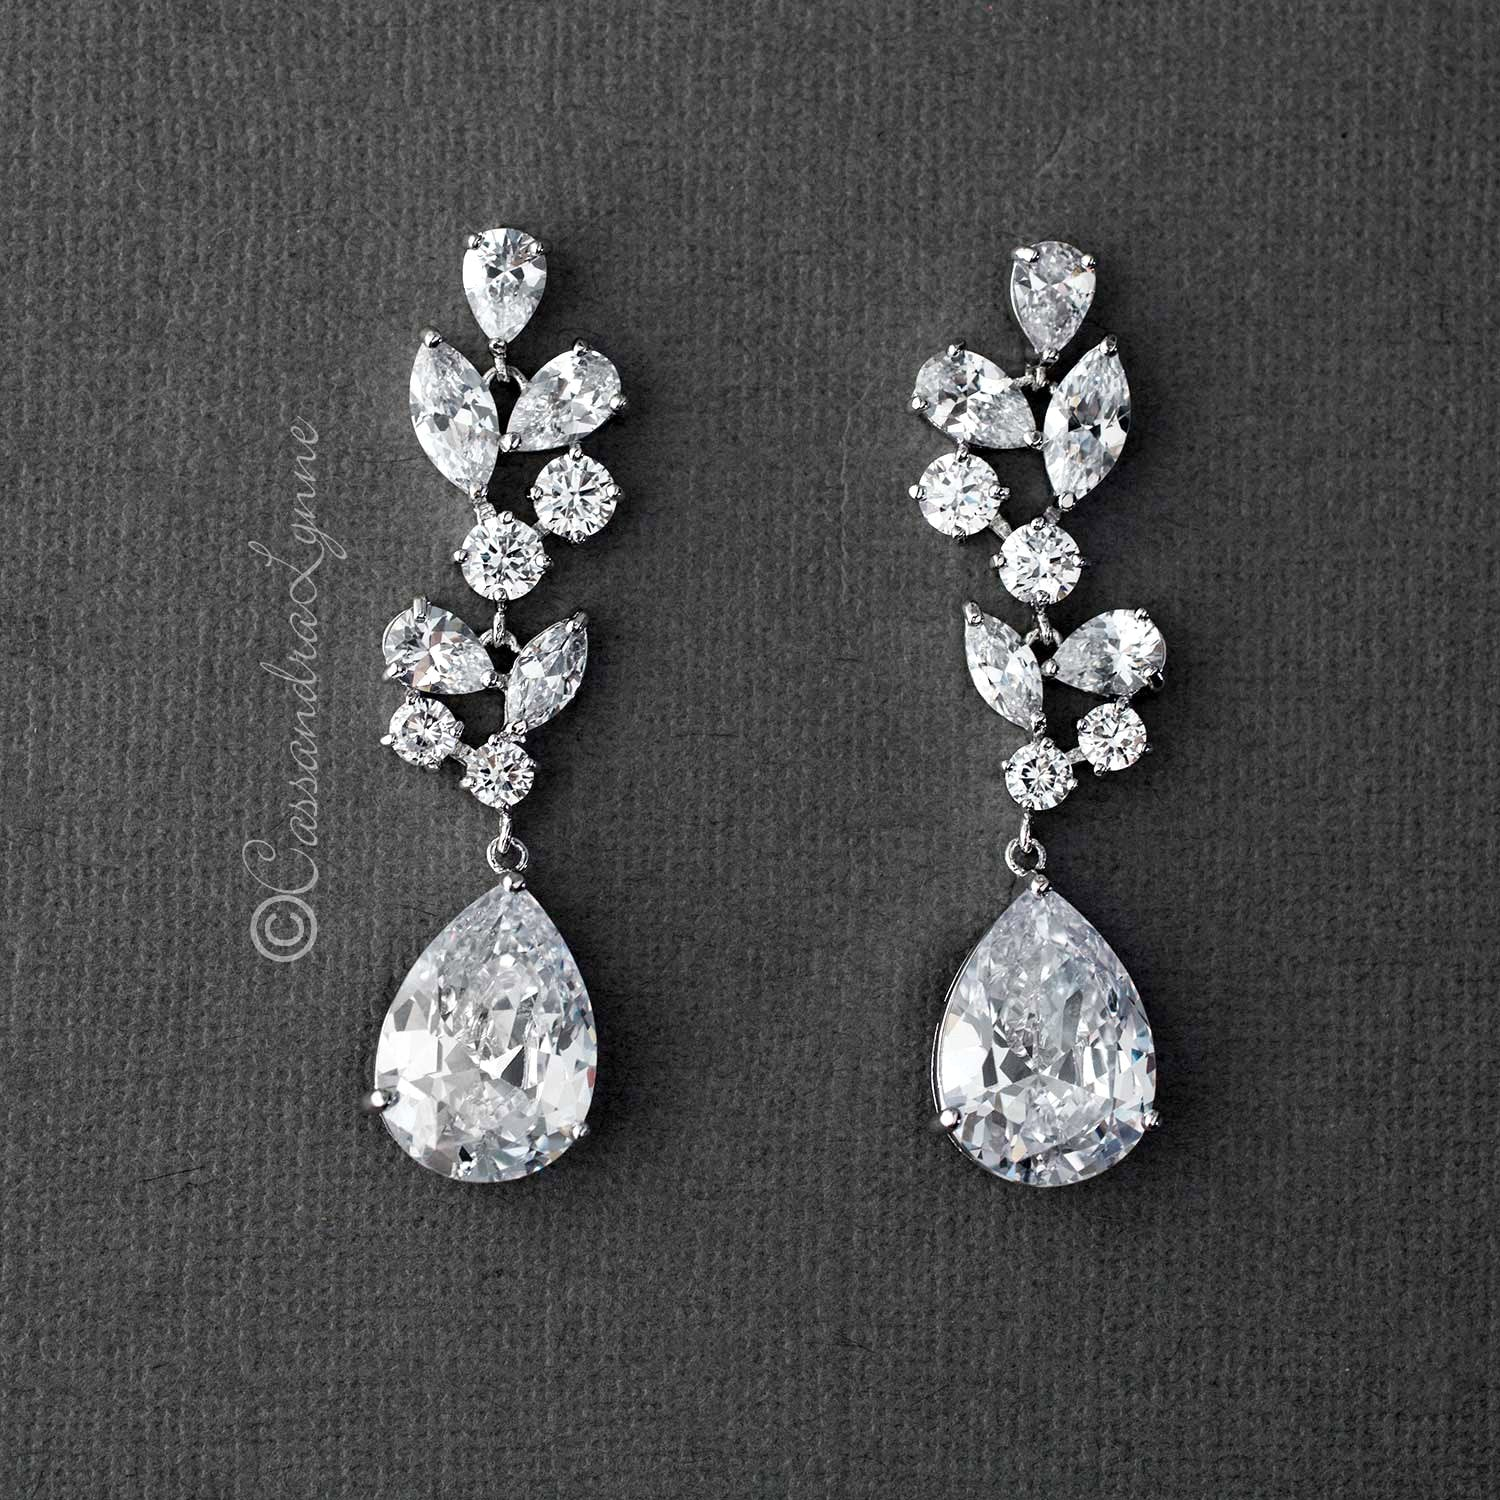 Bridal Earrings of Large CZ Drops